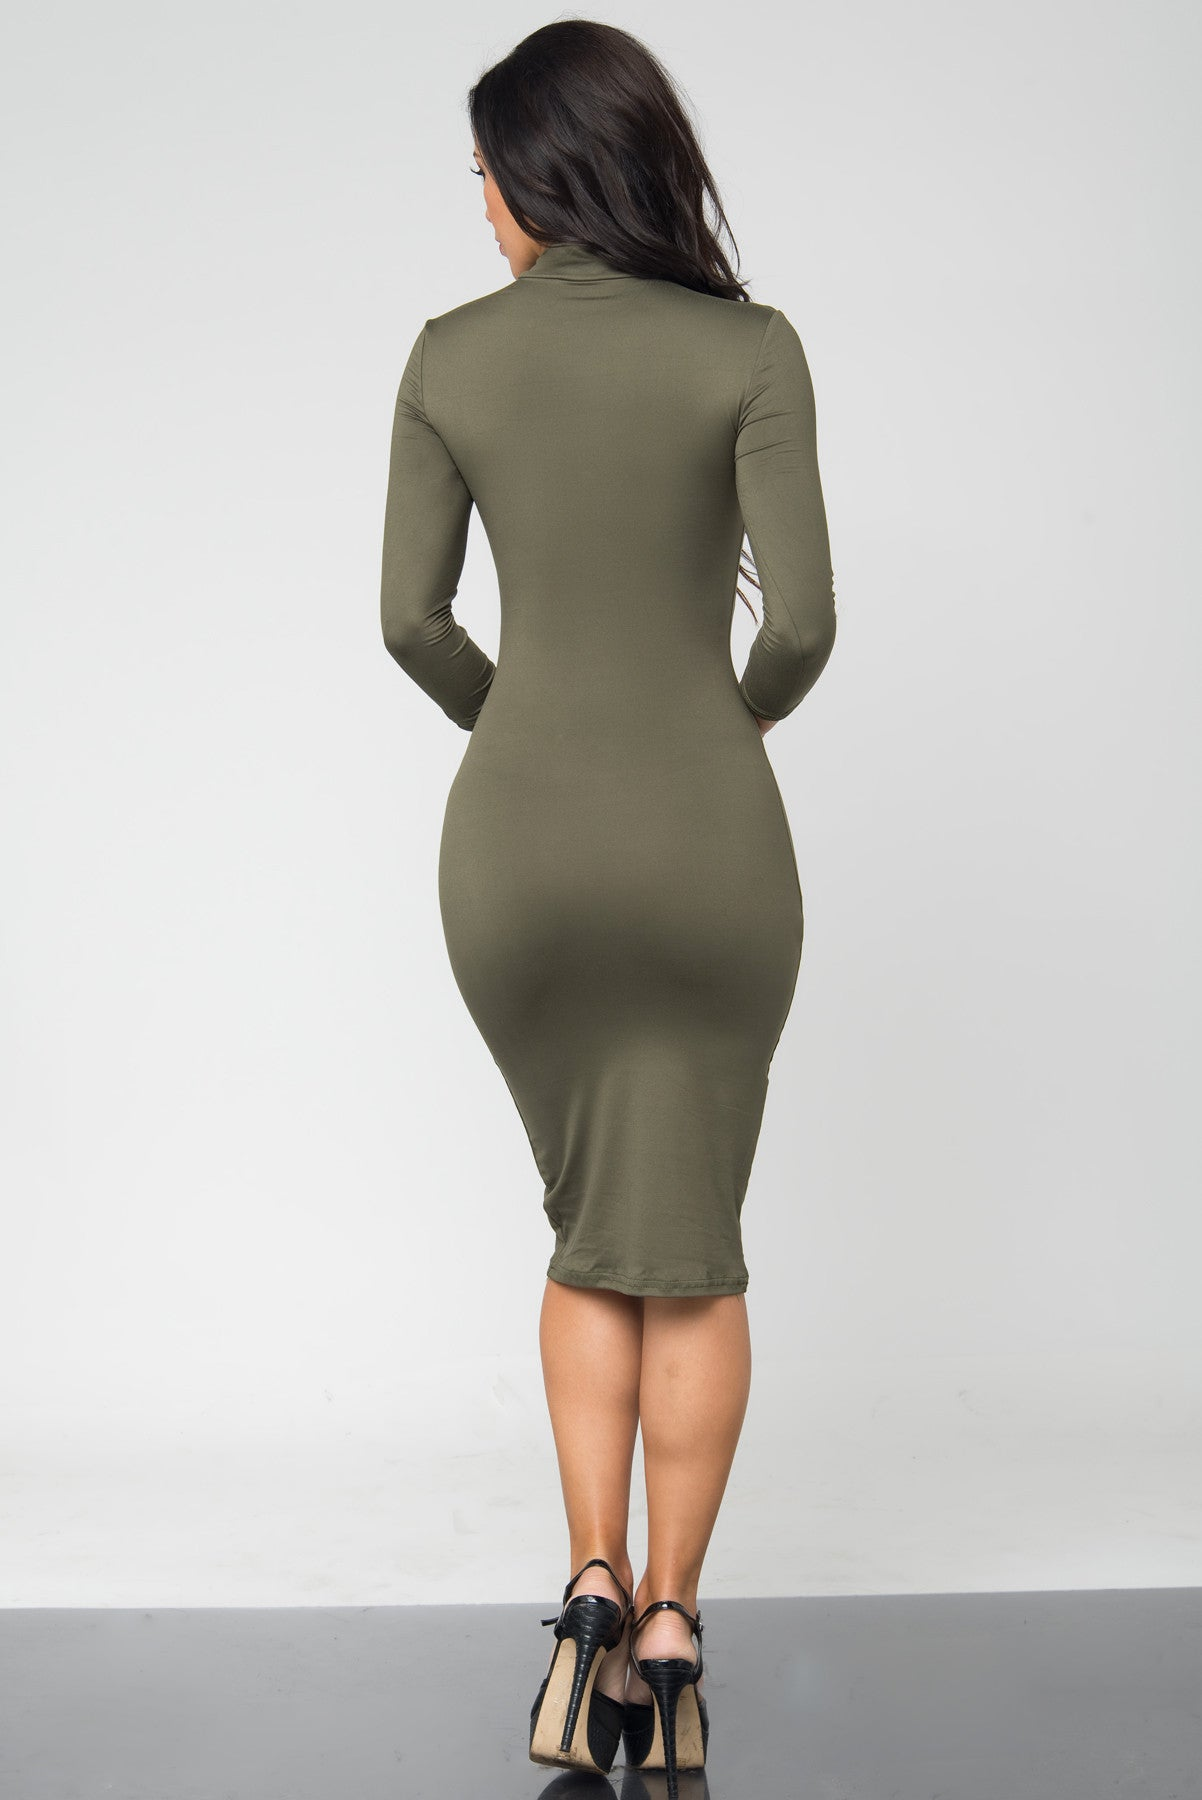 Marsha Olive Long Sleeve Dress - Fashion Effect Store  - 3